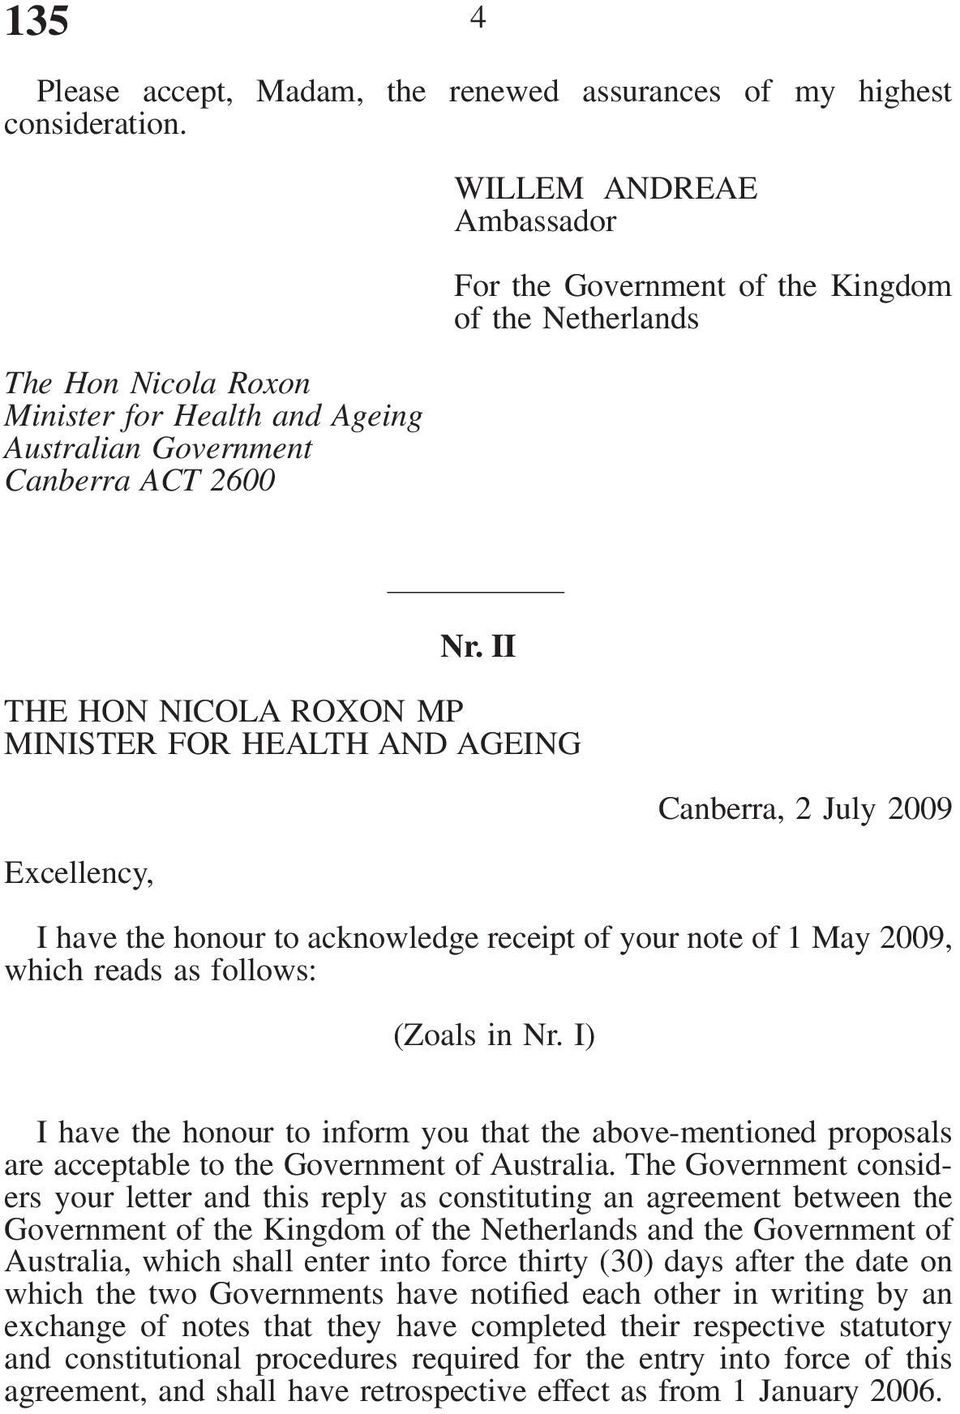 II THE HON NICOLA ROXON MP MINISTER FOR HEALTH AND AGEING Excellency, Canberra, 2 July 2009 I have the honour to acknowledge receipt of your note of 1 May 2009, which reads as follows: (Zoals in Nr.